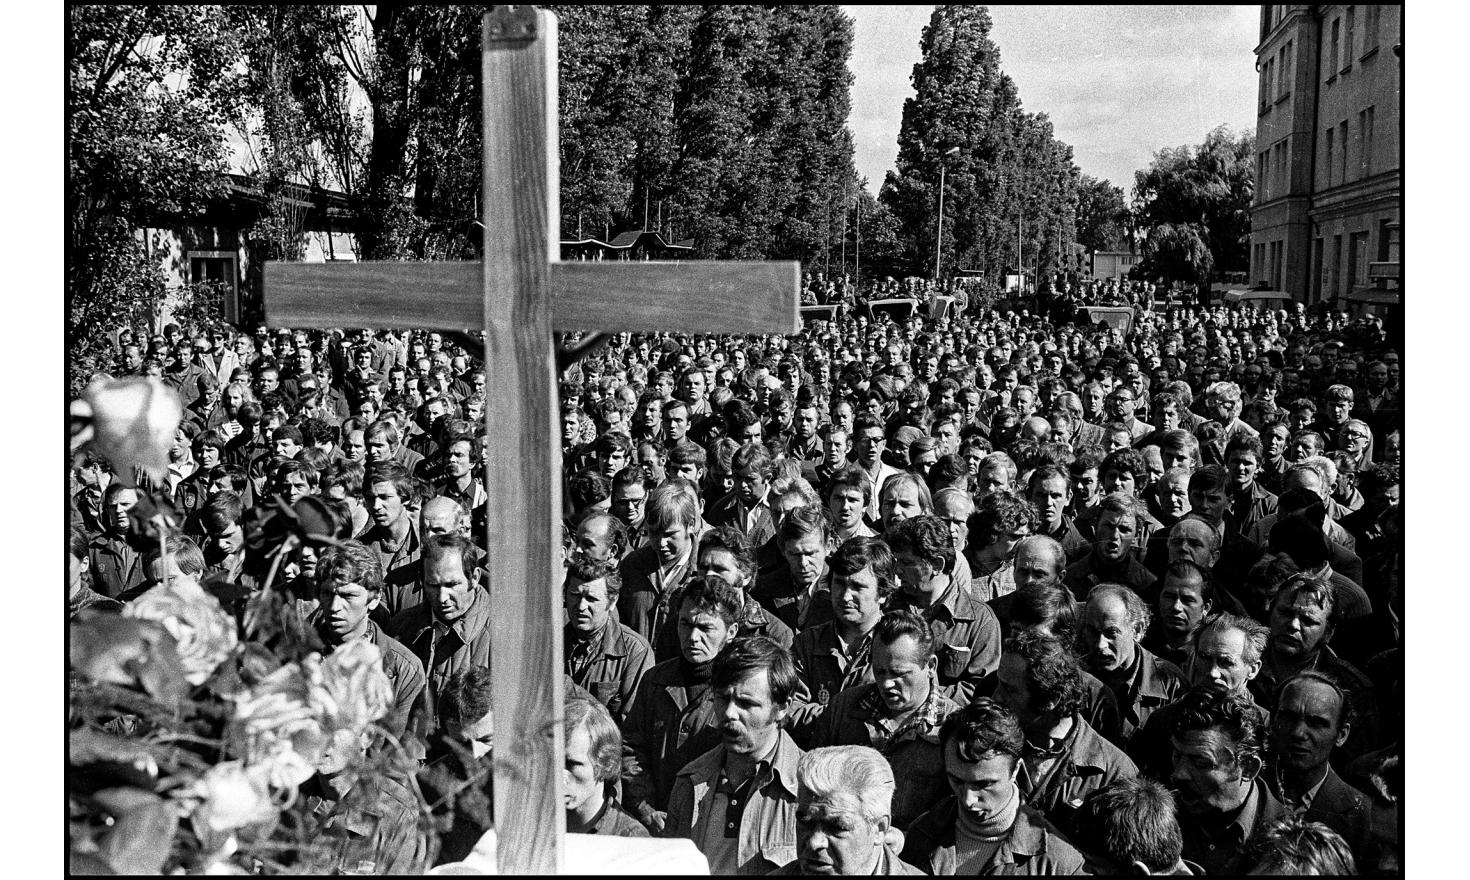 Mass at the Lenin's shipyard during the solidarnosc strike. Gdansk, Poland.August 1980.